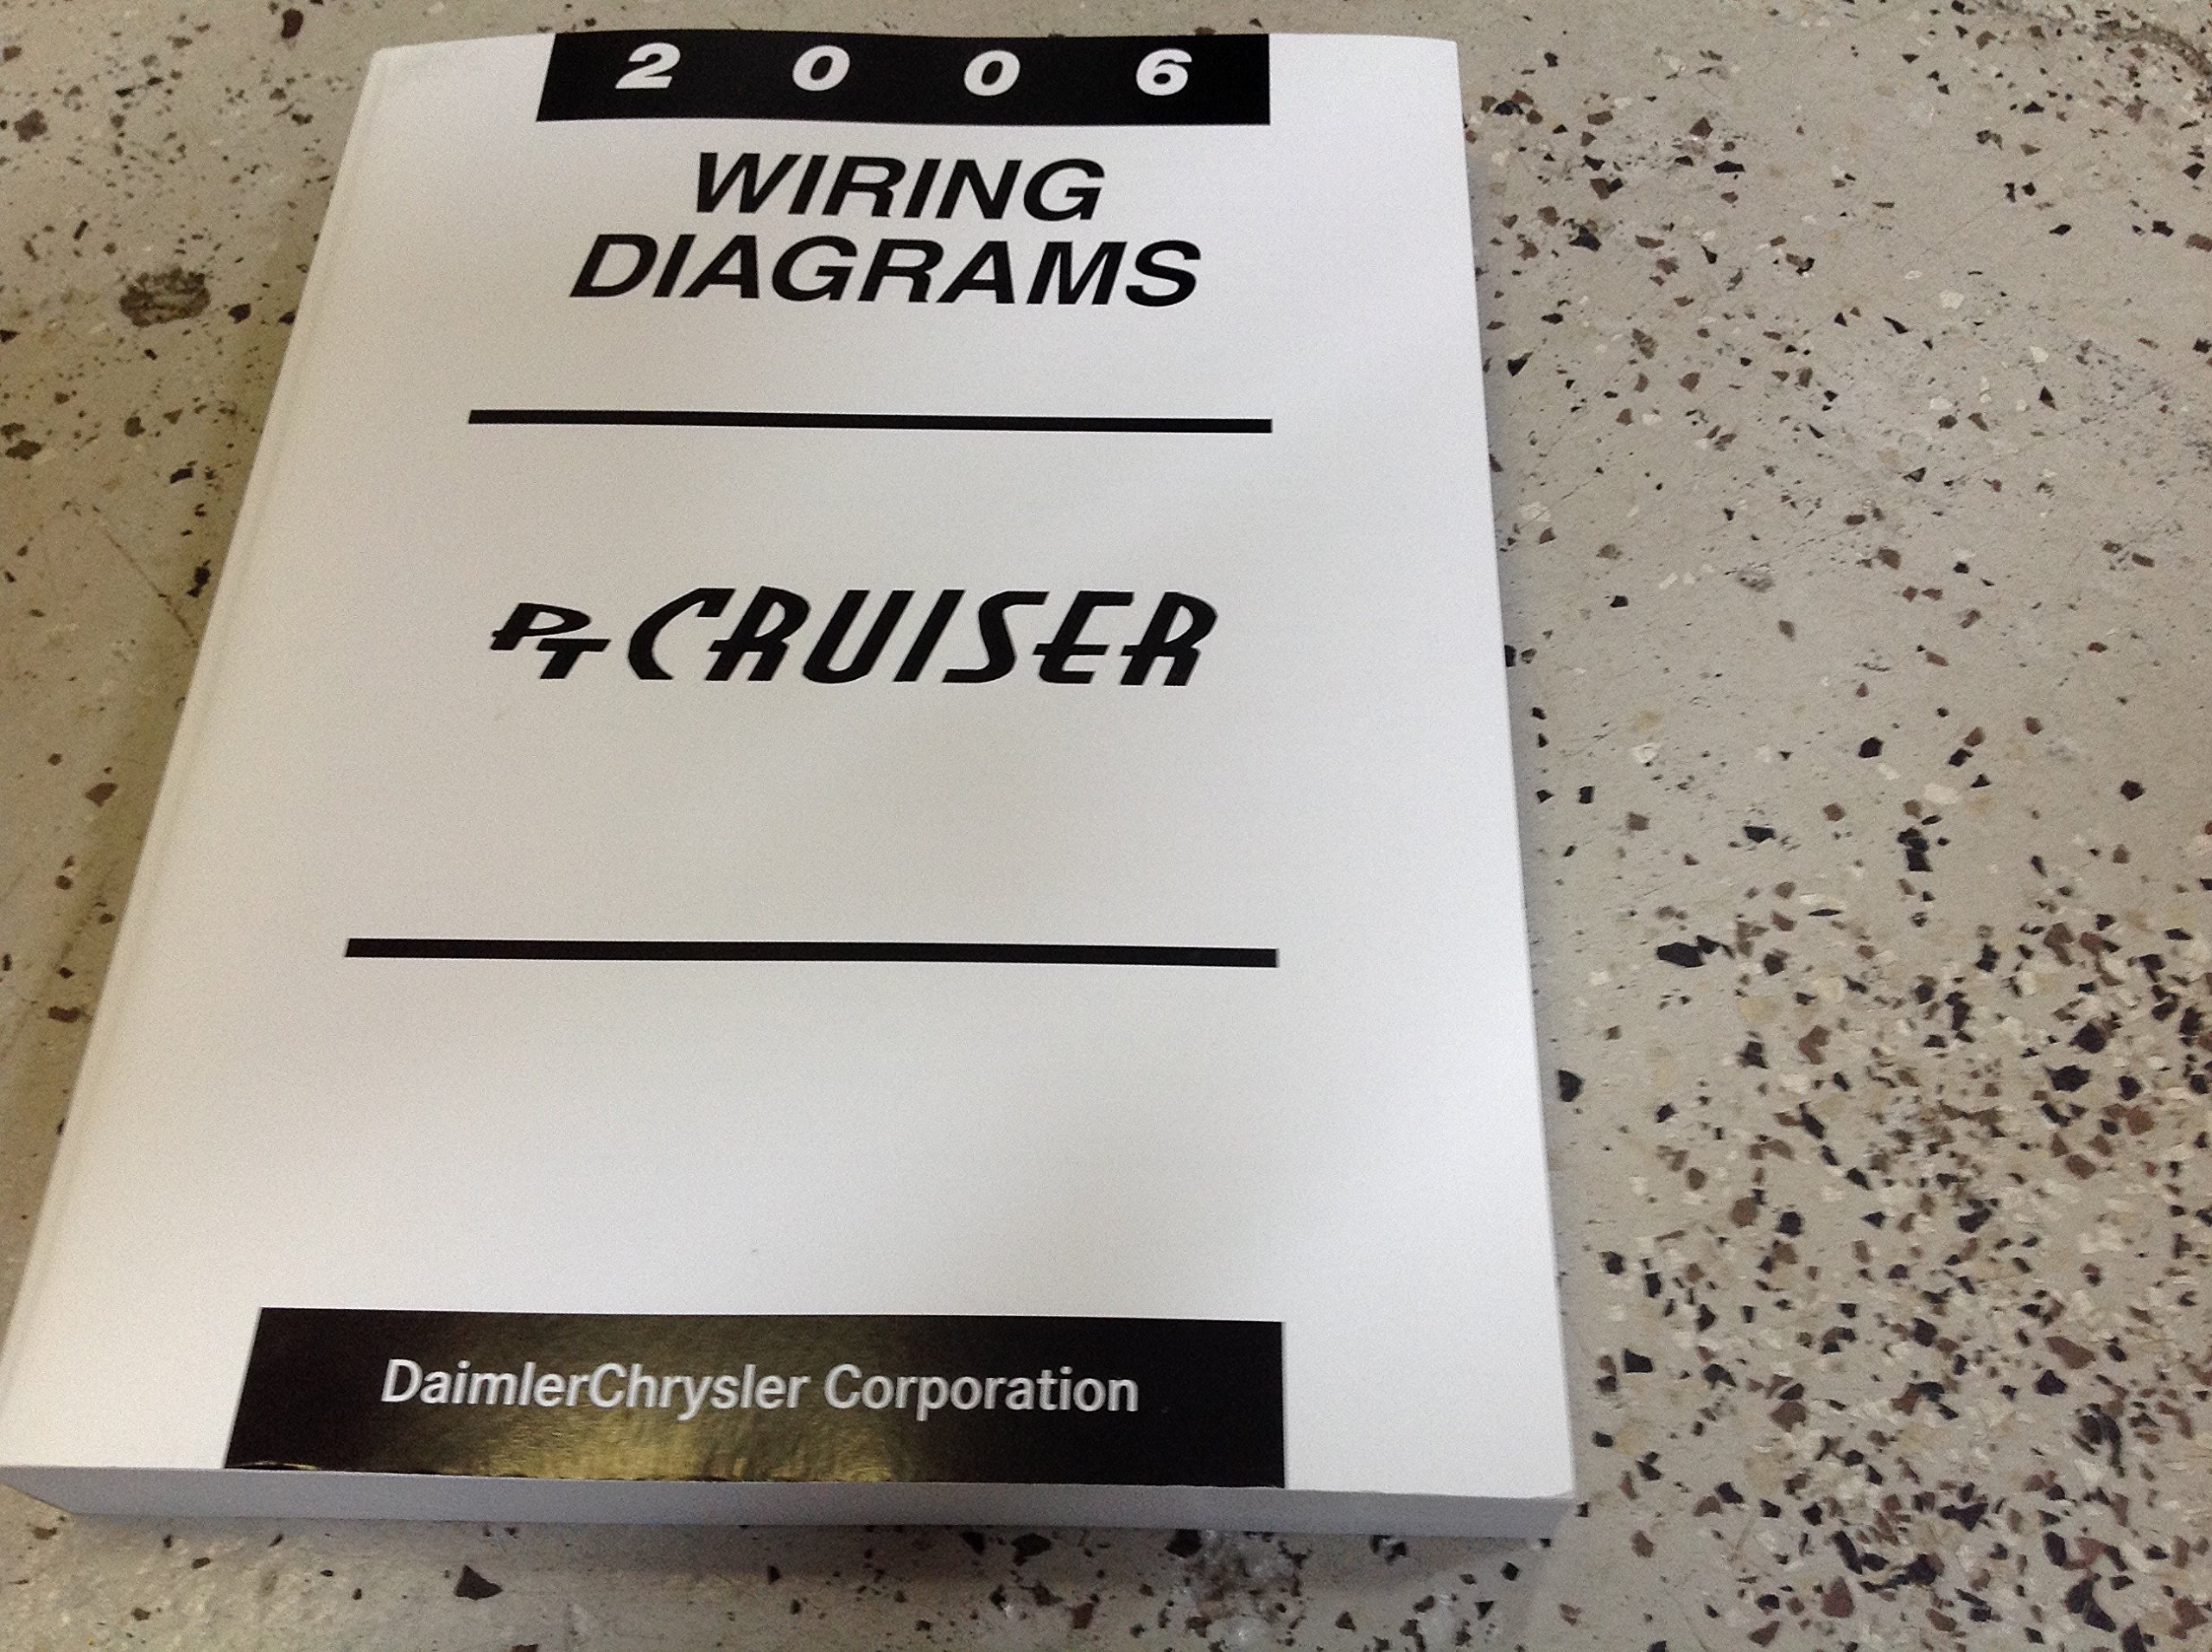 2006 Chrysler Pt Cruiser Wiring Diagrams Wiring Diagrams Site Cable Cable Geasparquet It